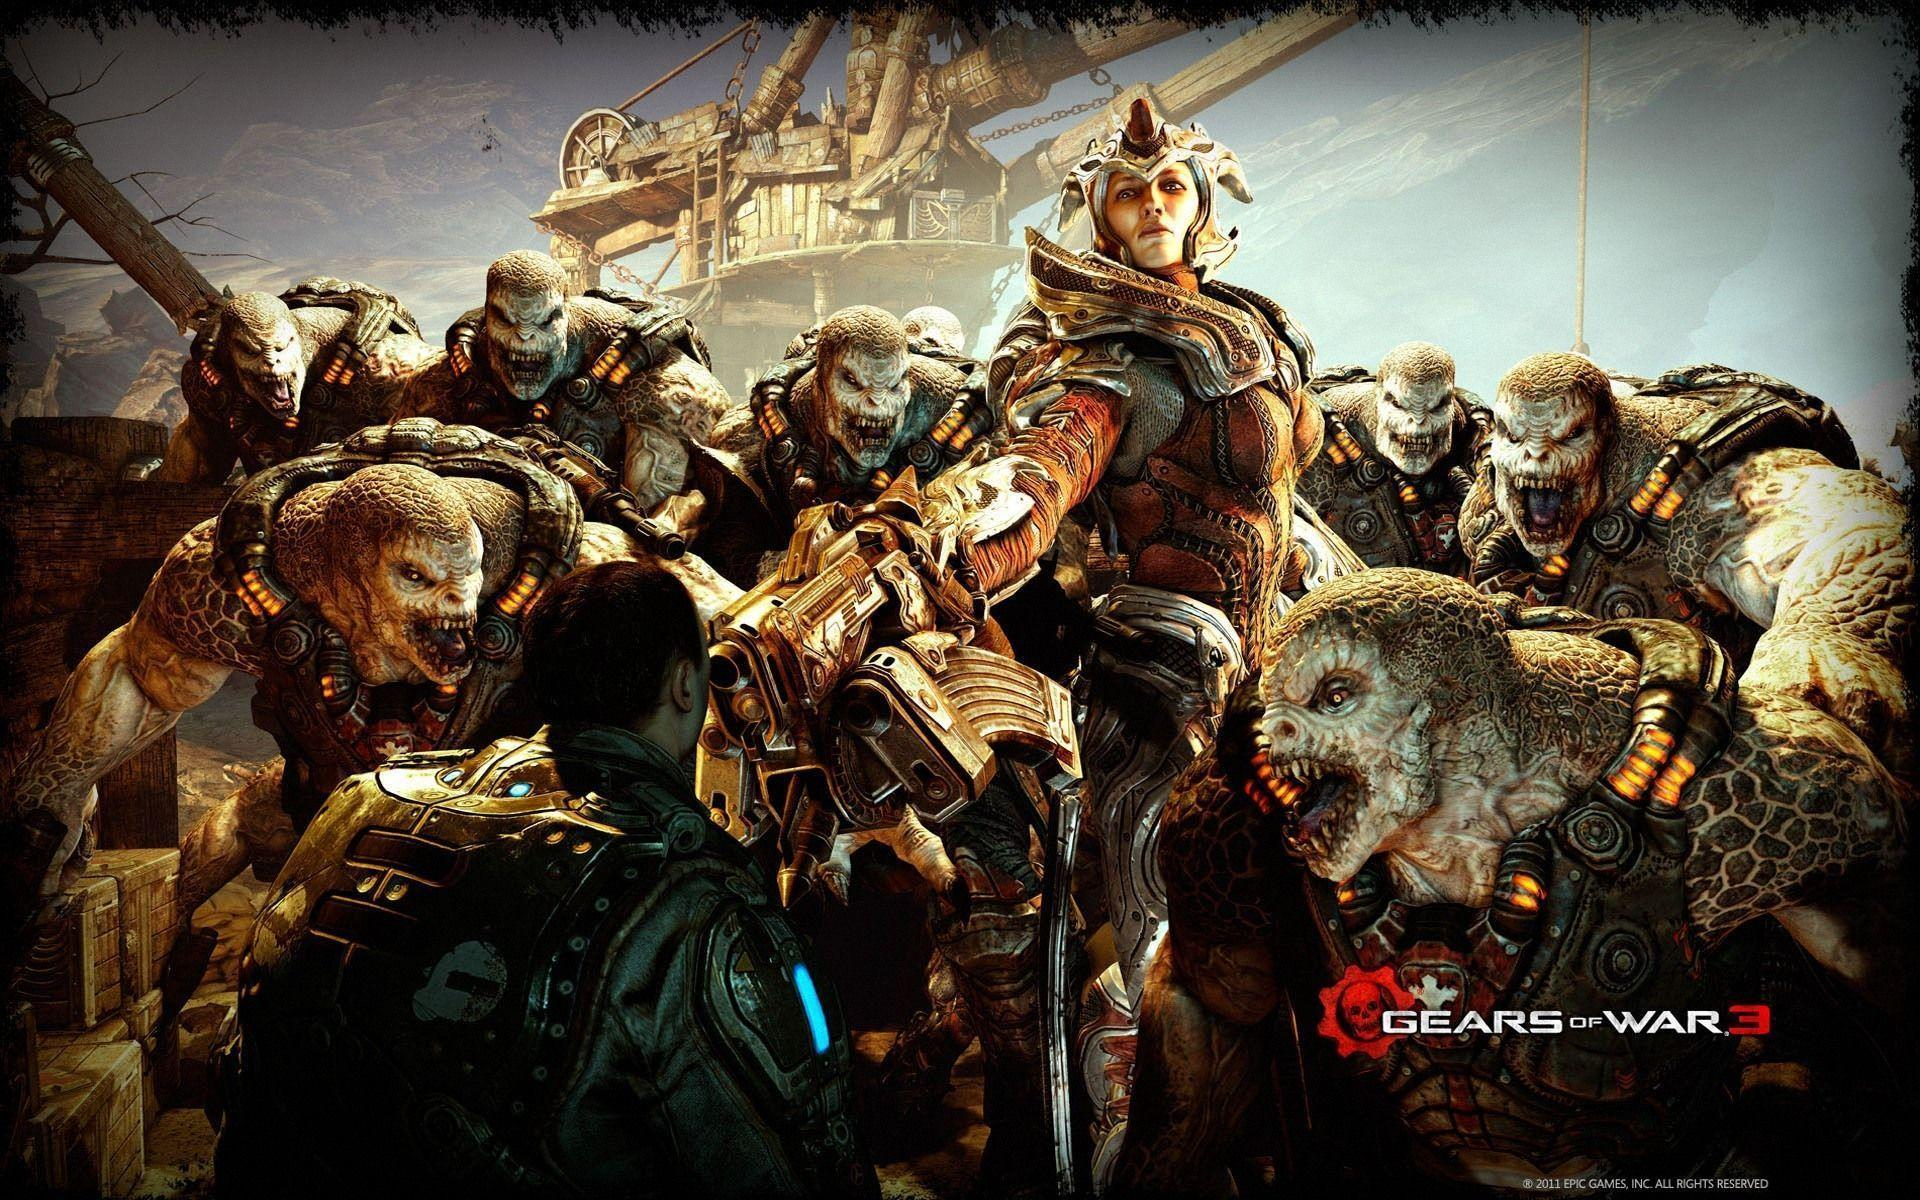 Gears Of War 3 Wallpapers Hd Wallpaper Cave